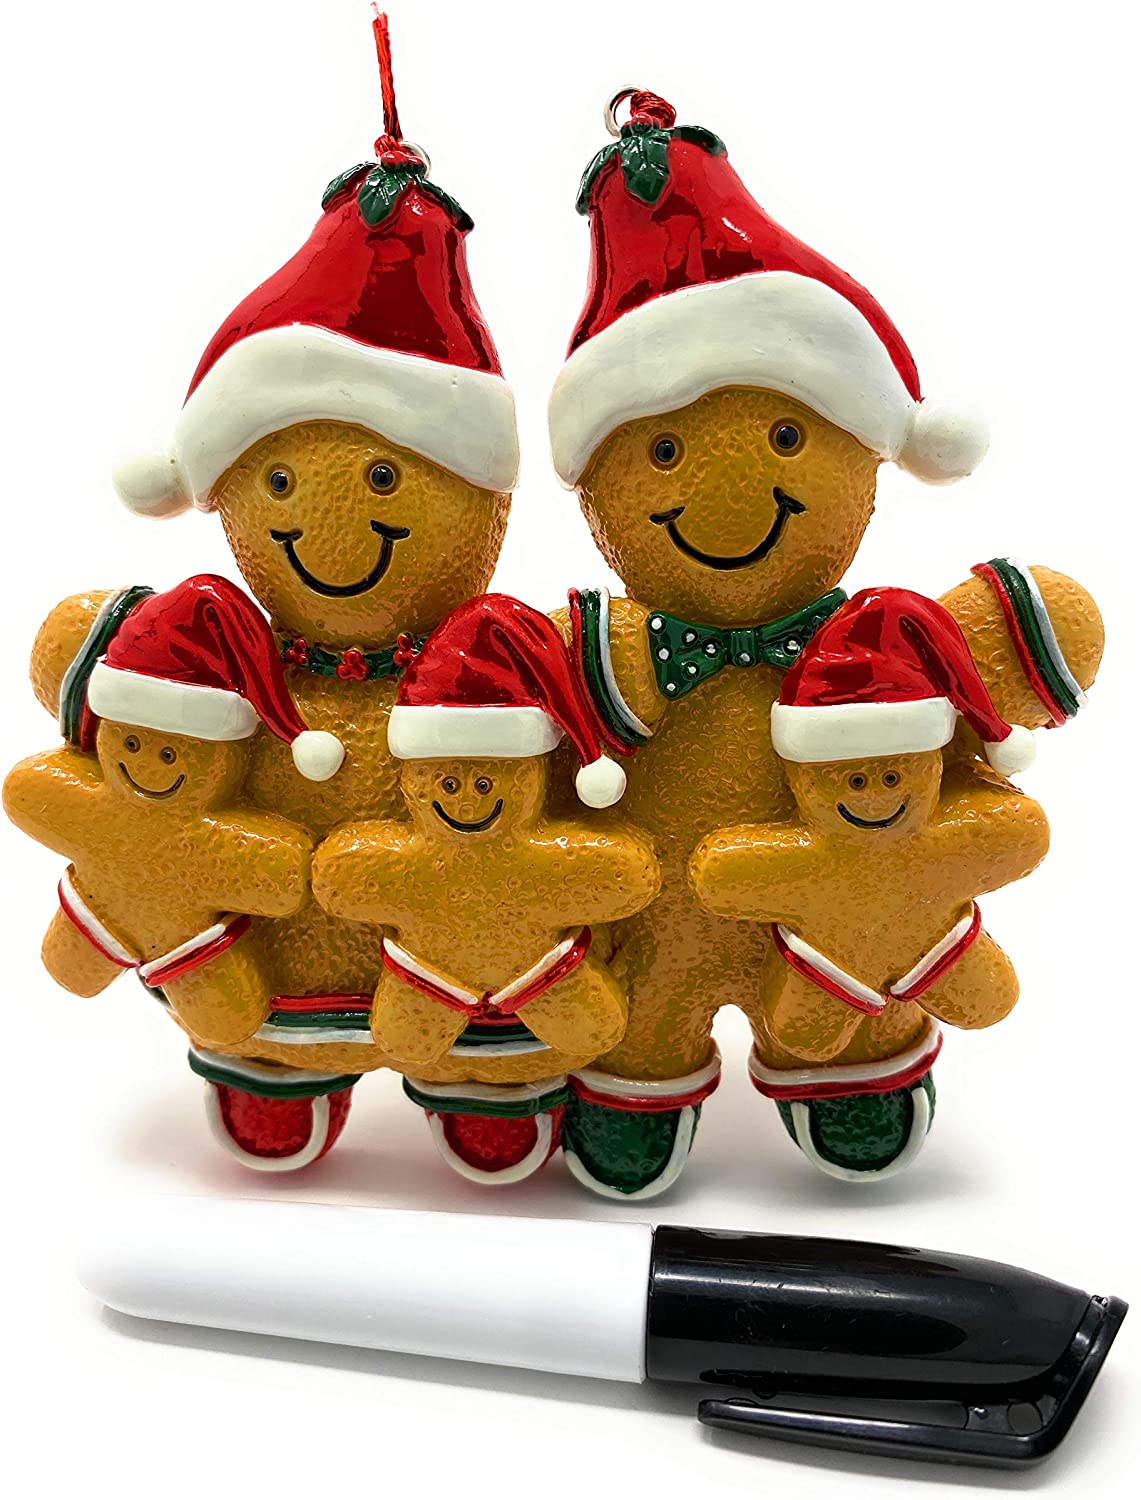 Gingerbread Man Ornaments Christmas Tree Ornament Mini Gingerbread Men Decorations Resin Kit Miniature Holiday Home Kitchen Decor | Black Pen Marker Included to Personalized Gingerman Family of 5